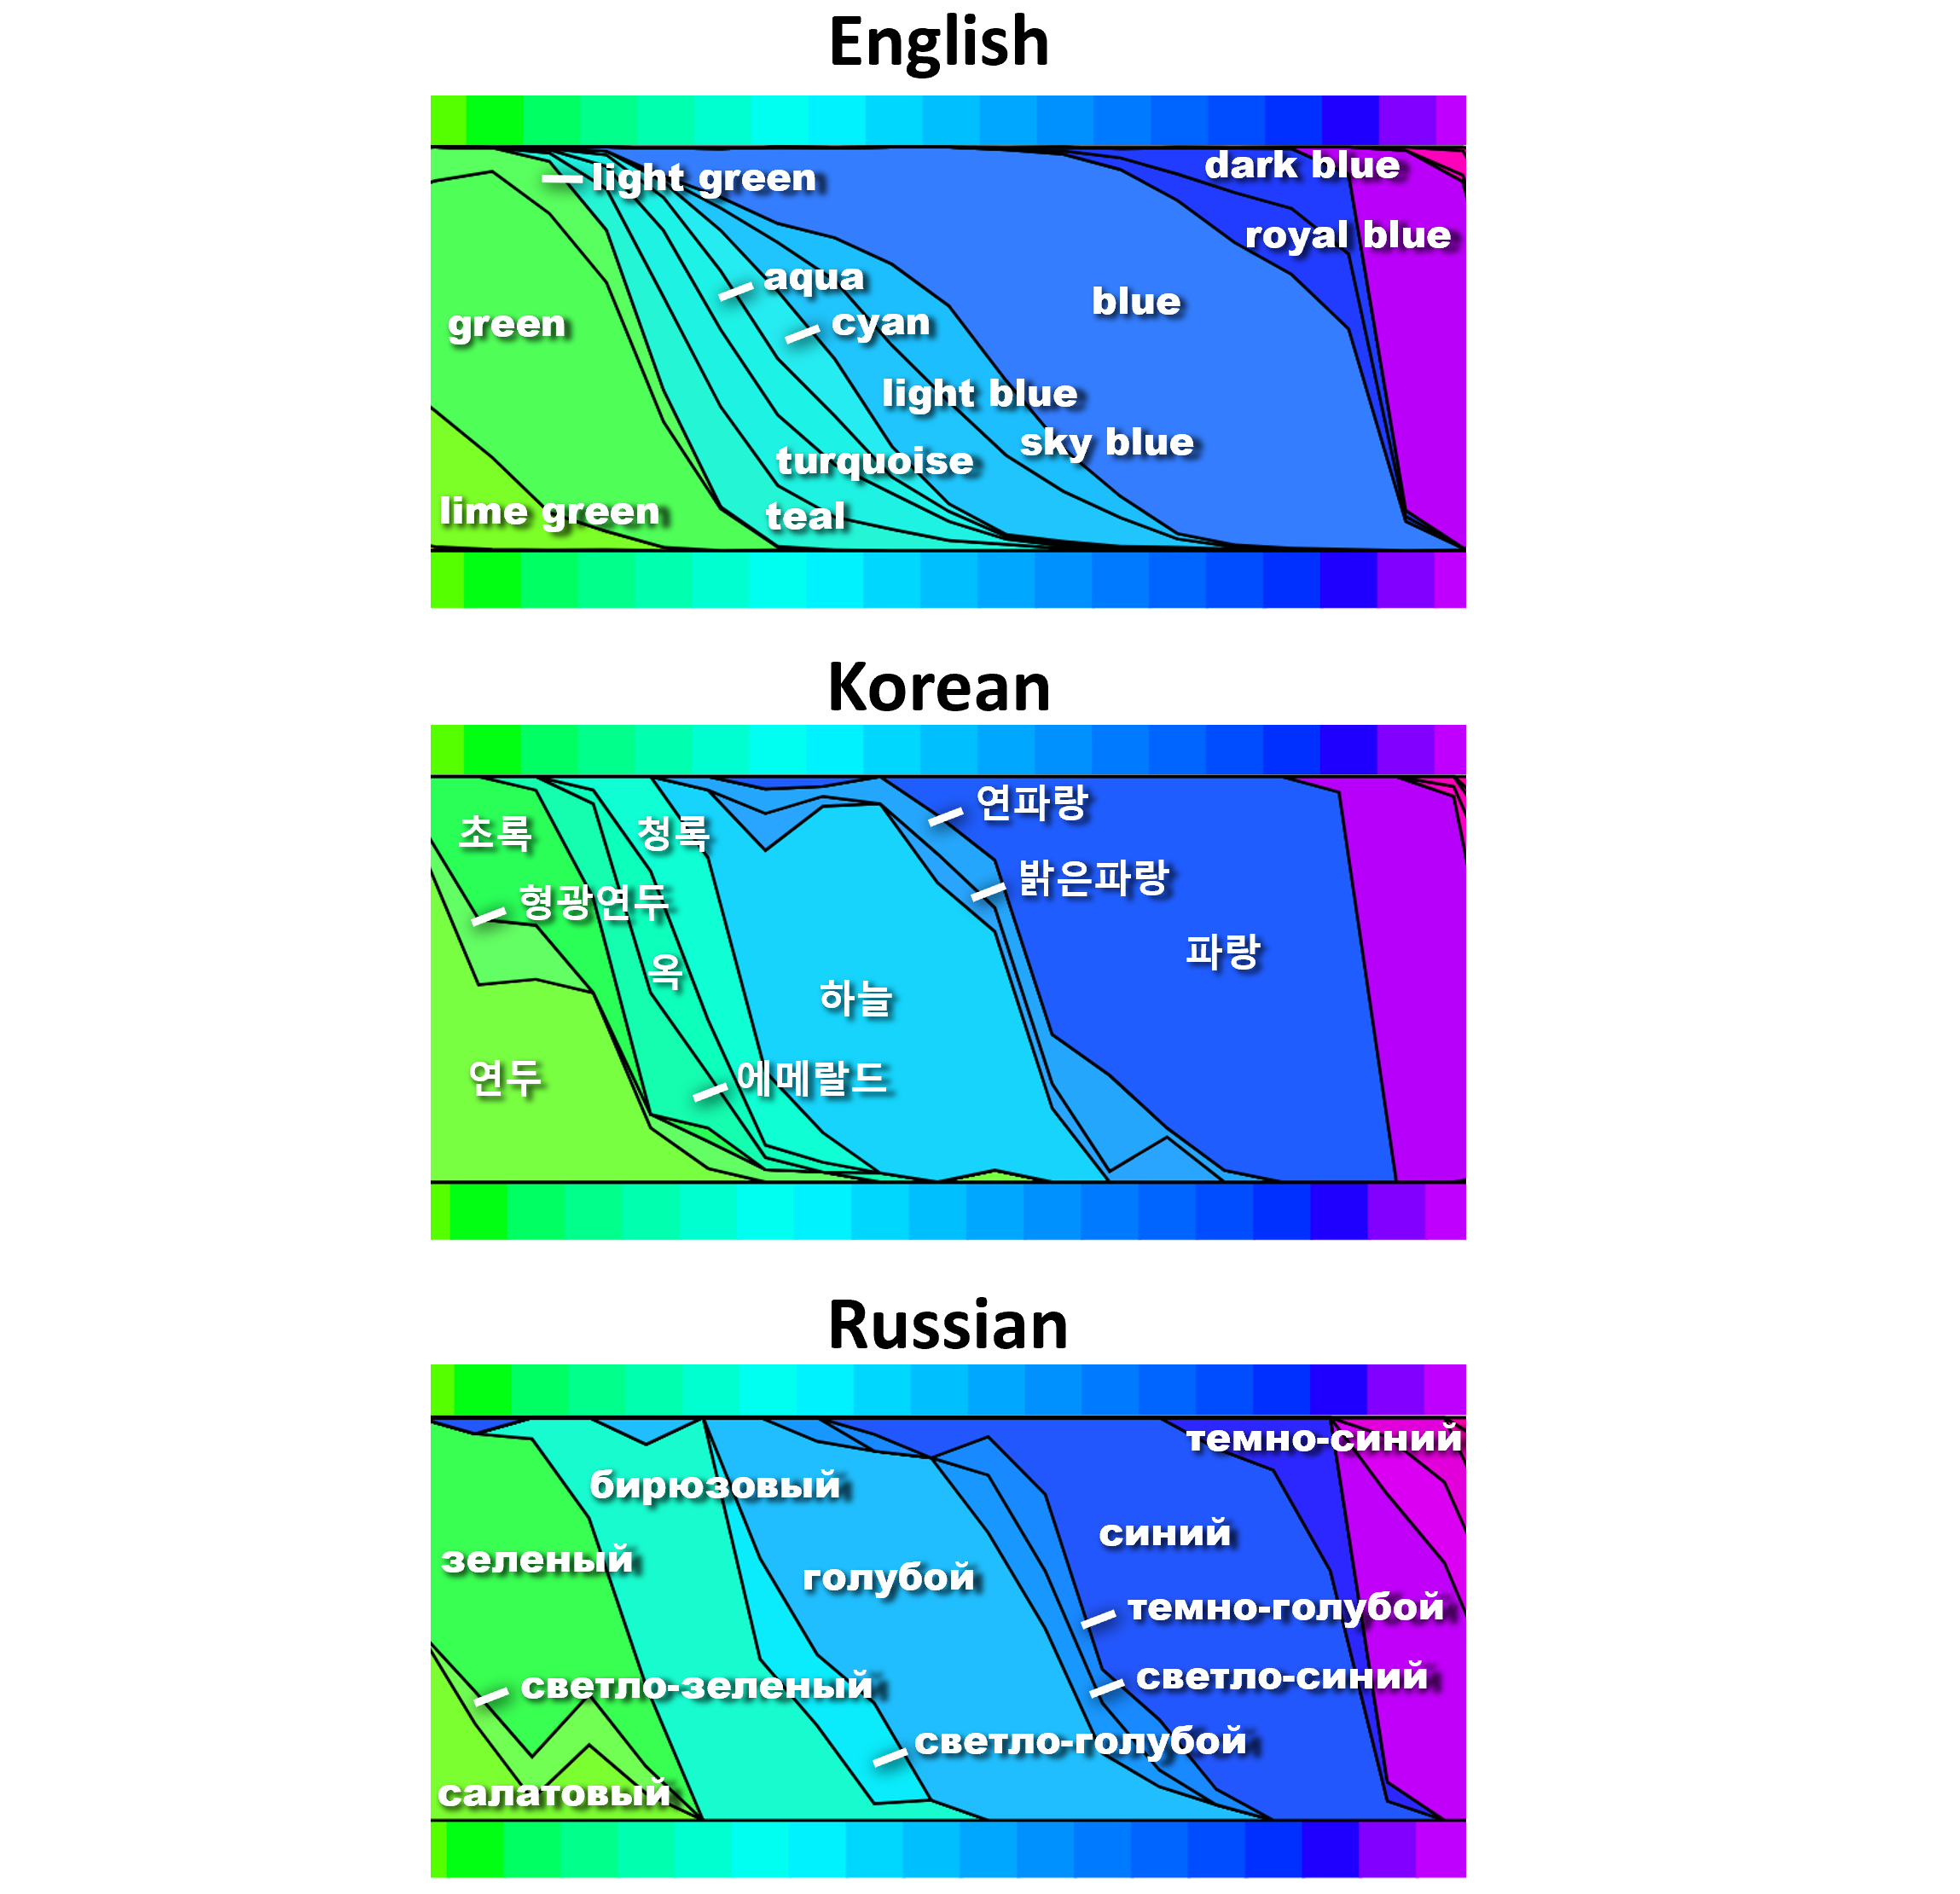 Hue blue names in three different languages (top to bottom): English, Korean, and Russian.